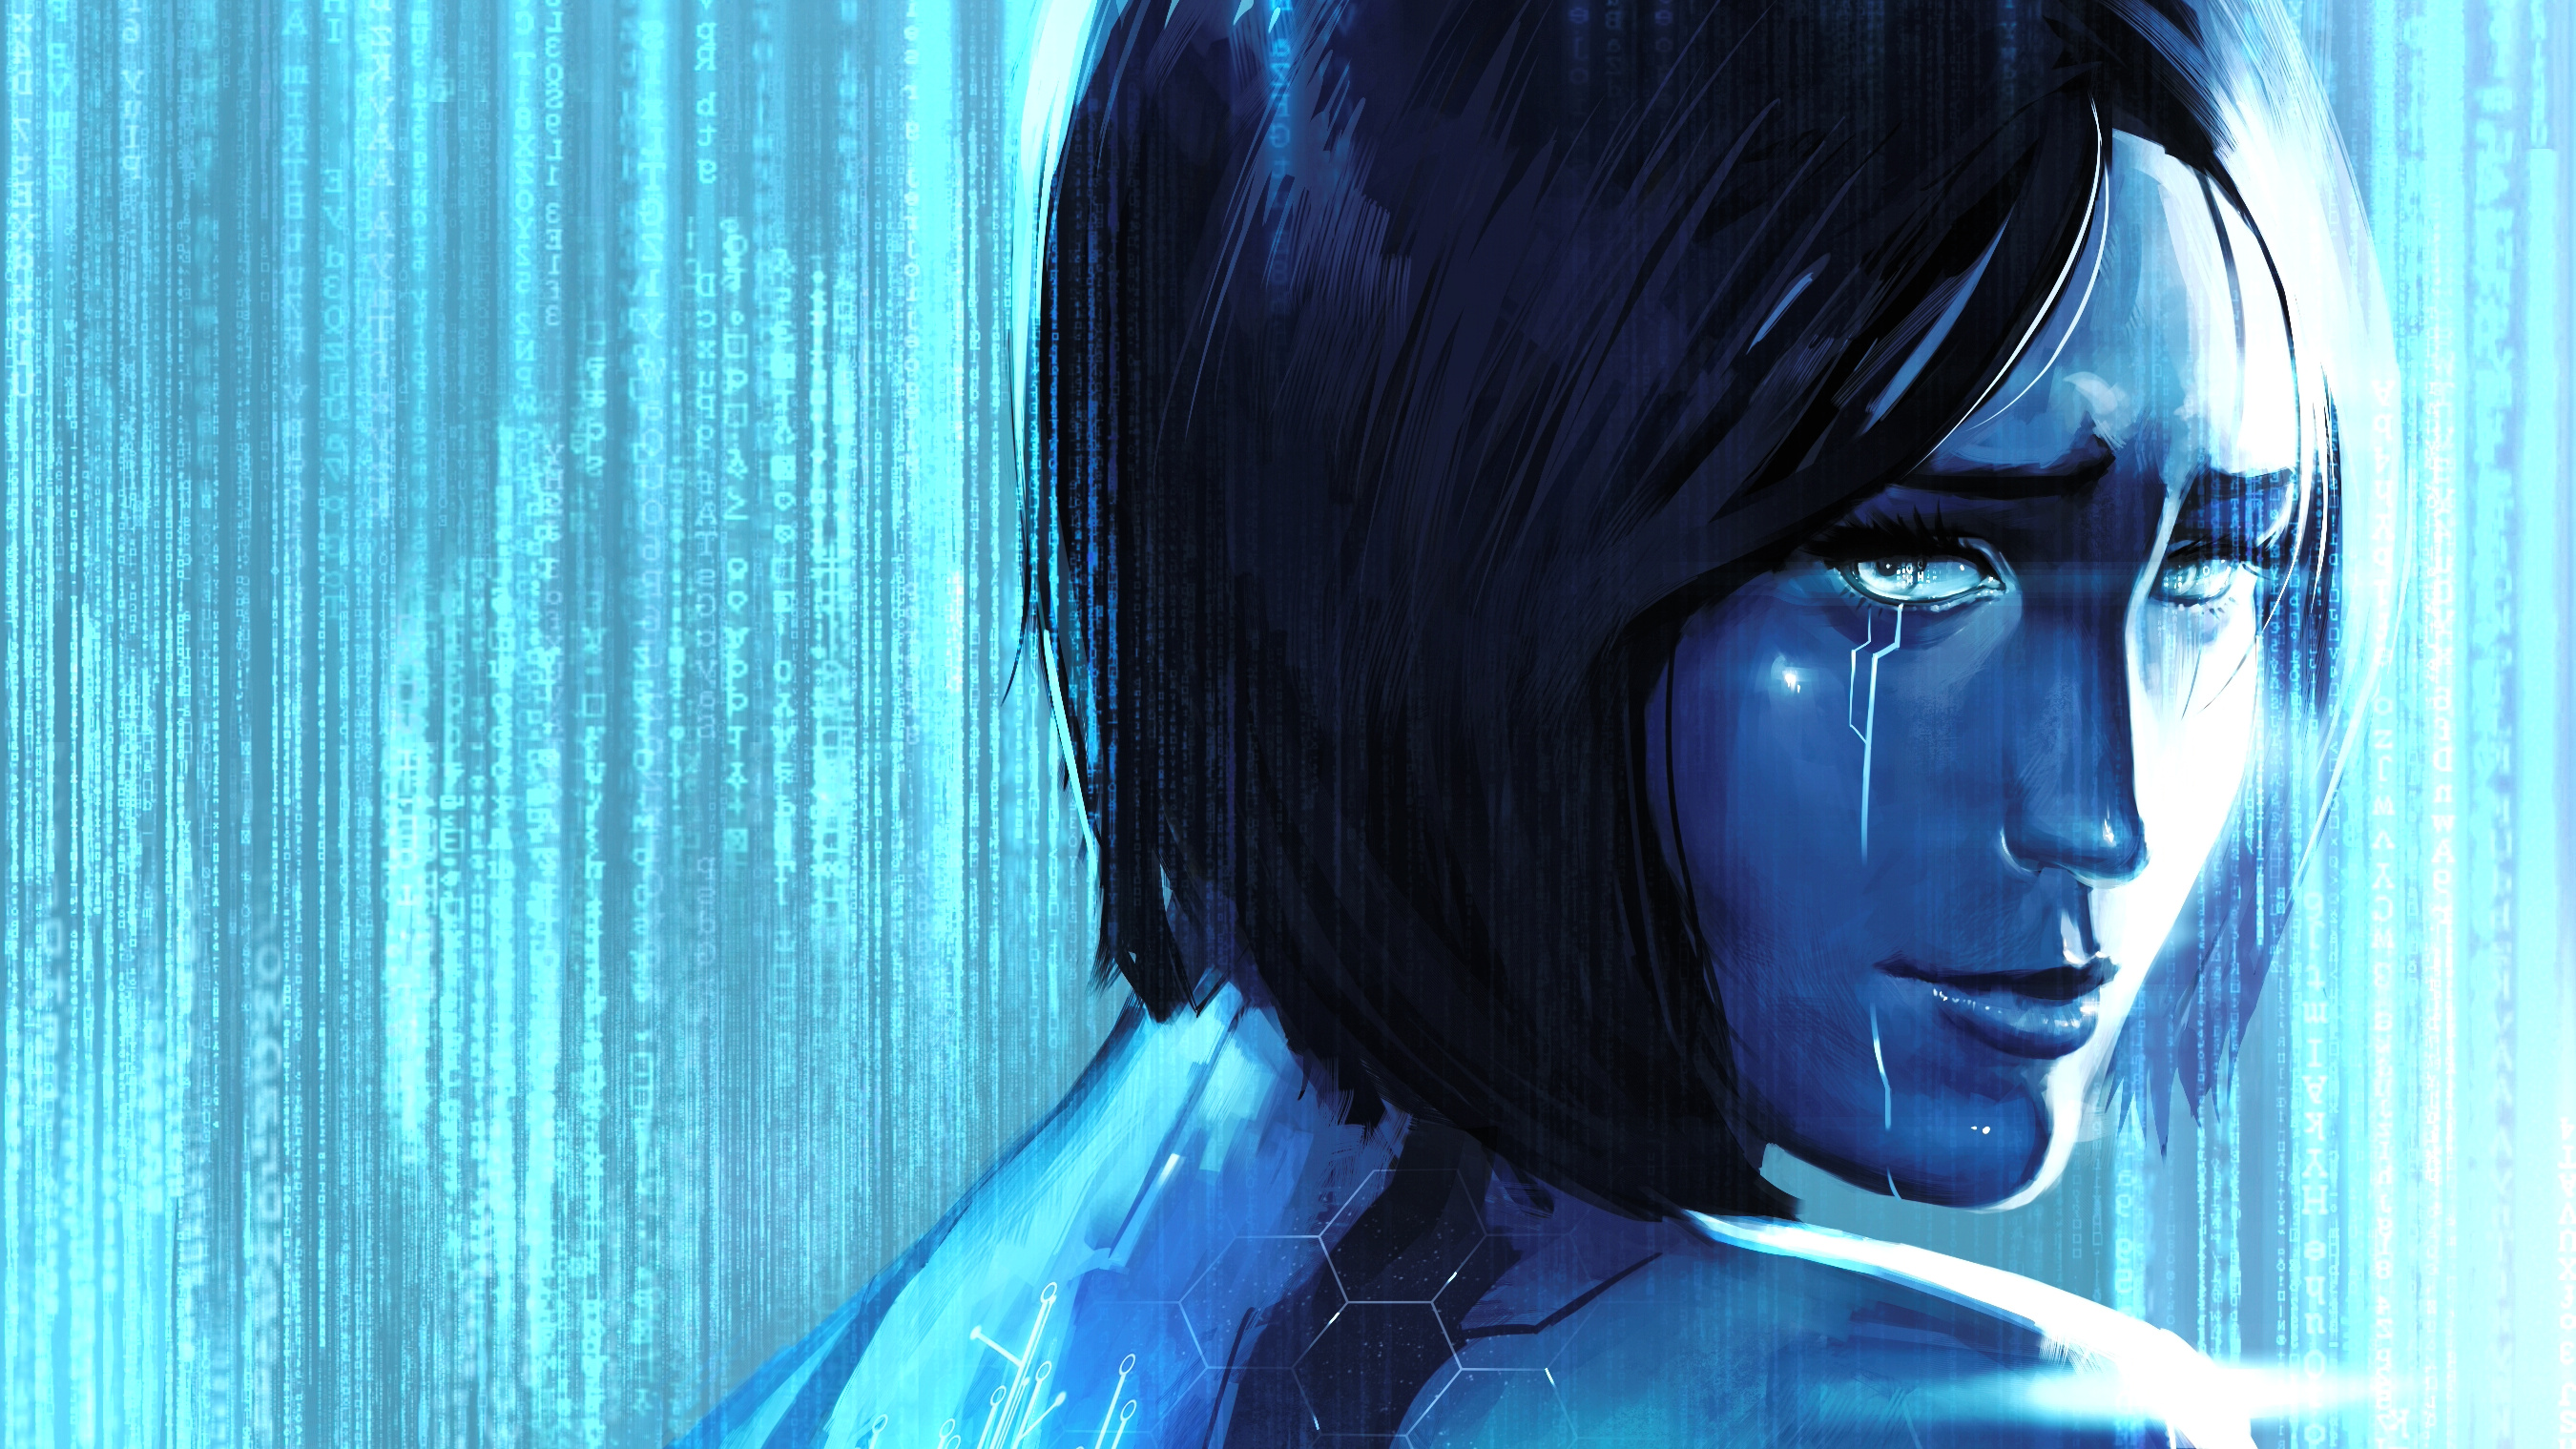 cortana wallpaper2 - photo #16